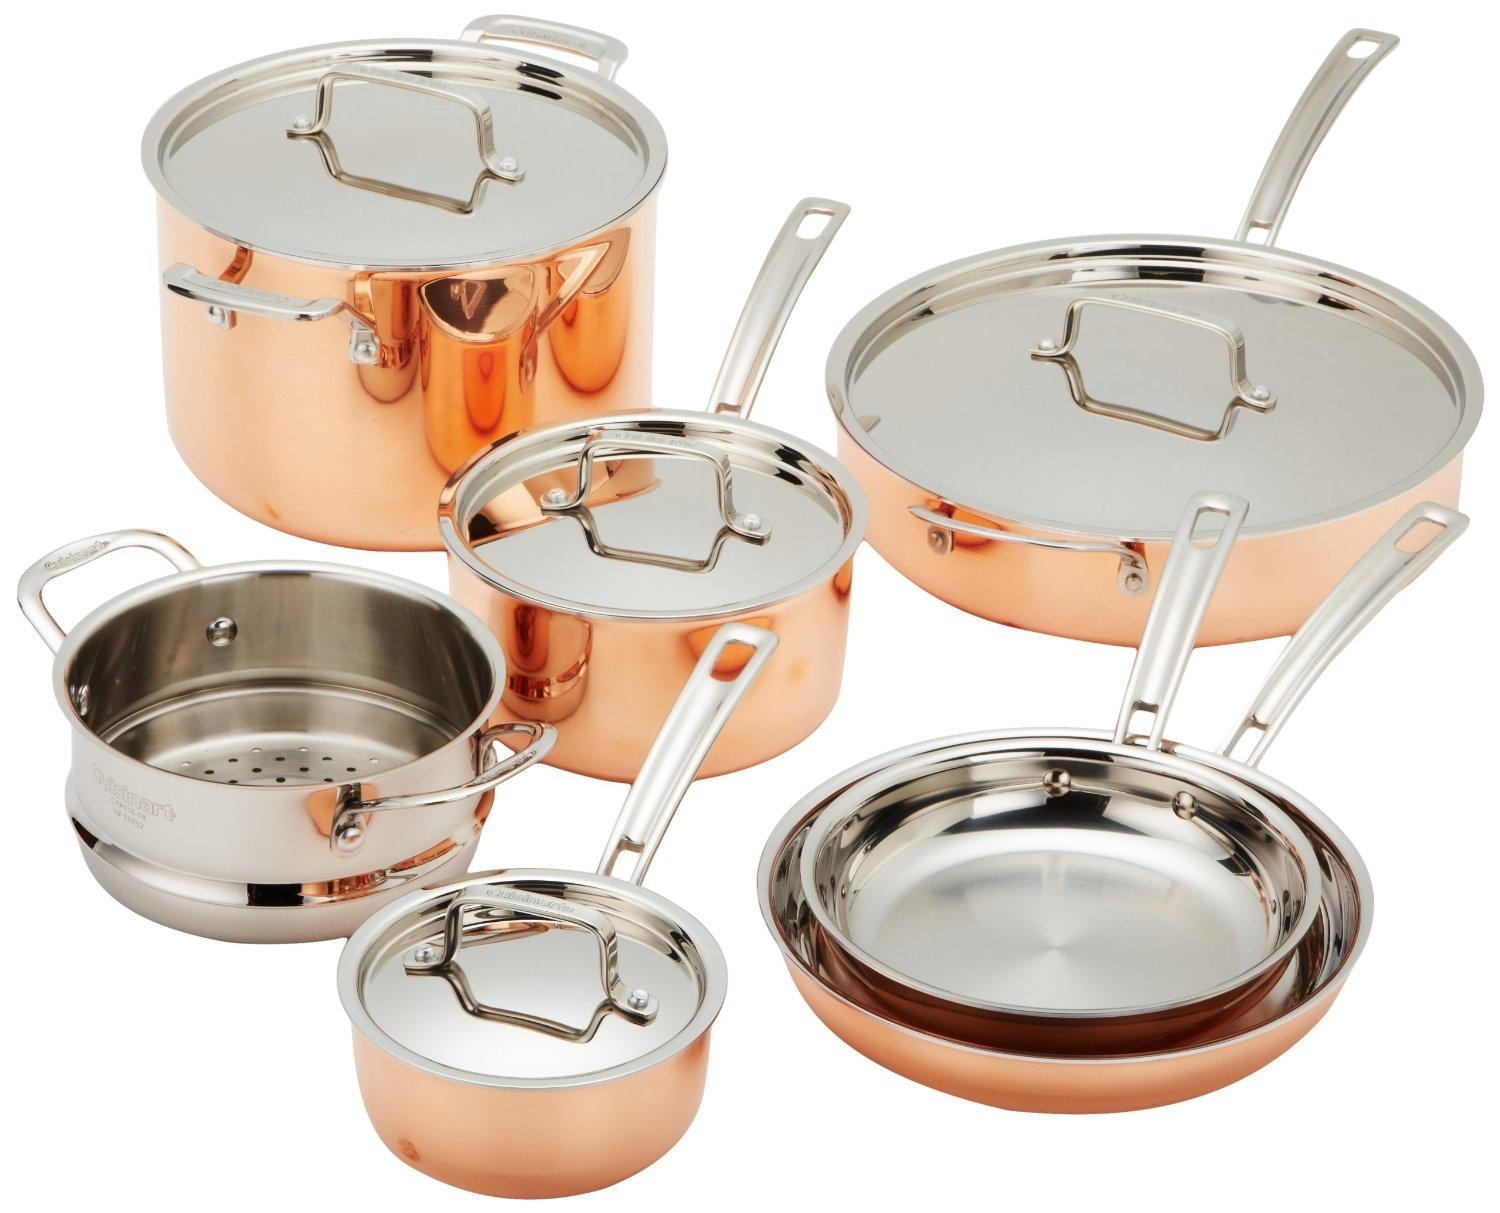 $359.99 Cuisinart CTP-11AM Copper Tri-Ply Stainless Steel 11-Piece Cookware Set